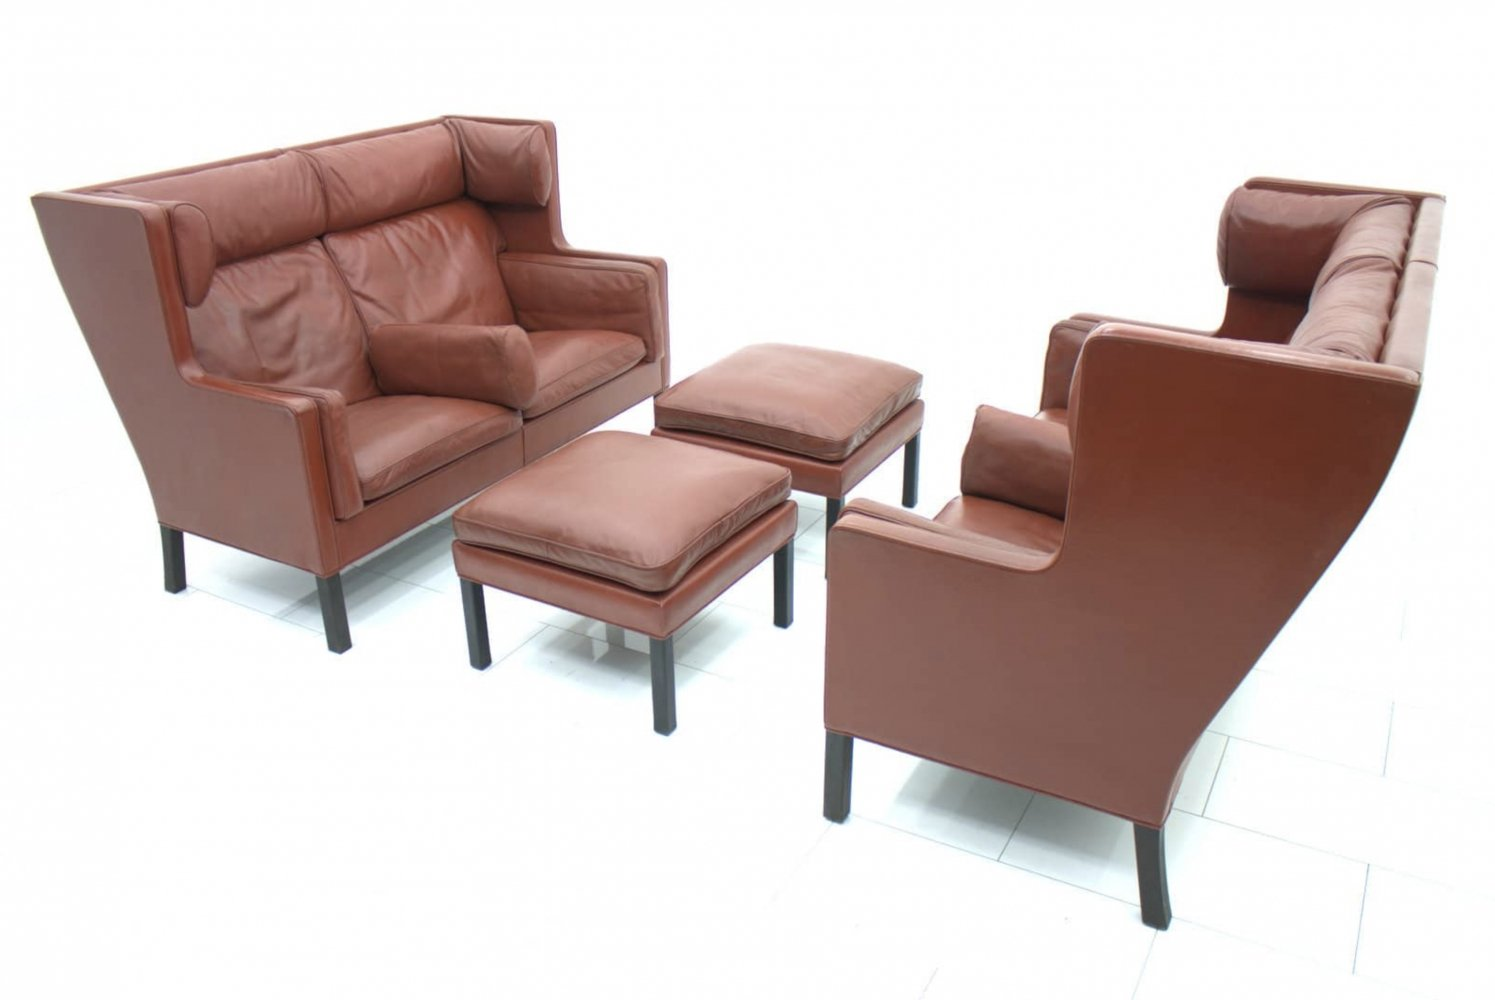 Pair of Børge Mogensen Coupe 2192 Leather Sofas by Frederica, Denmark 1971